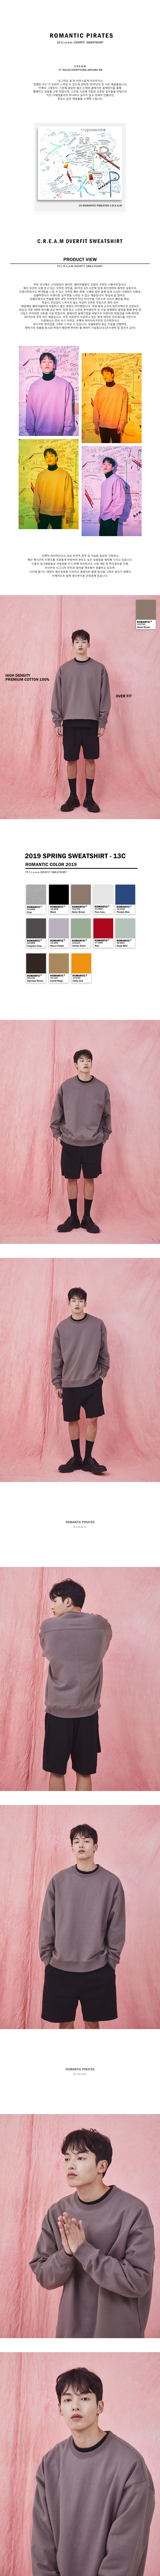 로맨틱 파이어리츠(ROMANTICPIRATES) C.r.e.a.m Overfit Sweatshirt (Balen Brown)